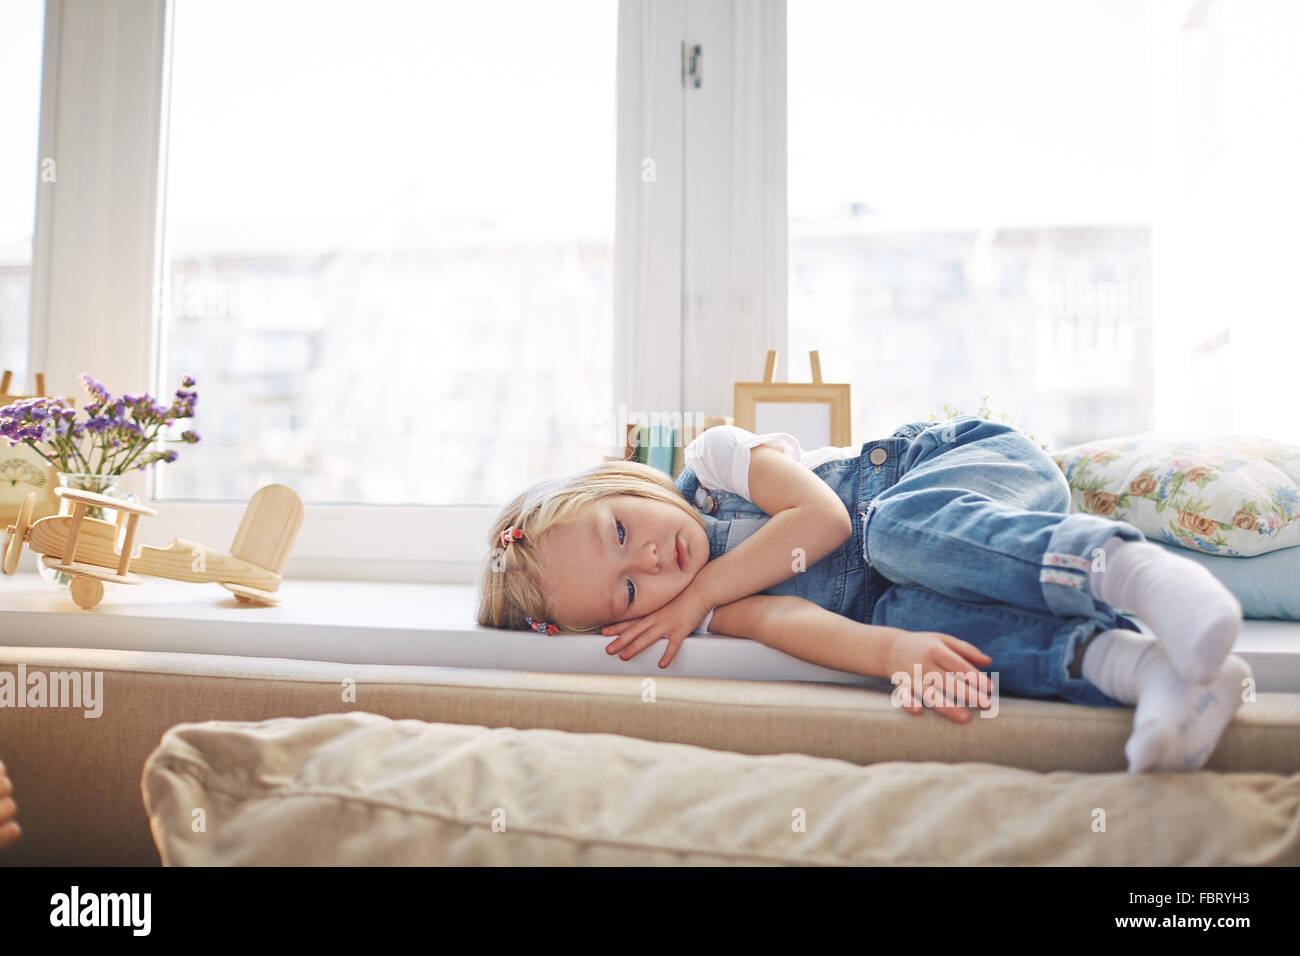 Sad little girl in denim overall lying on windowsill - Stock Image